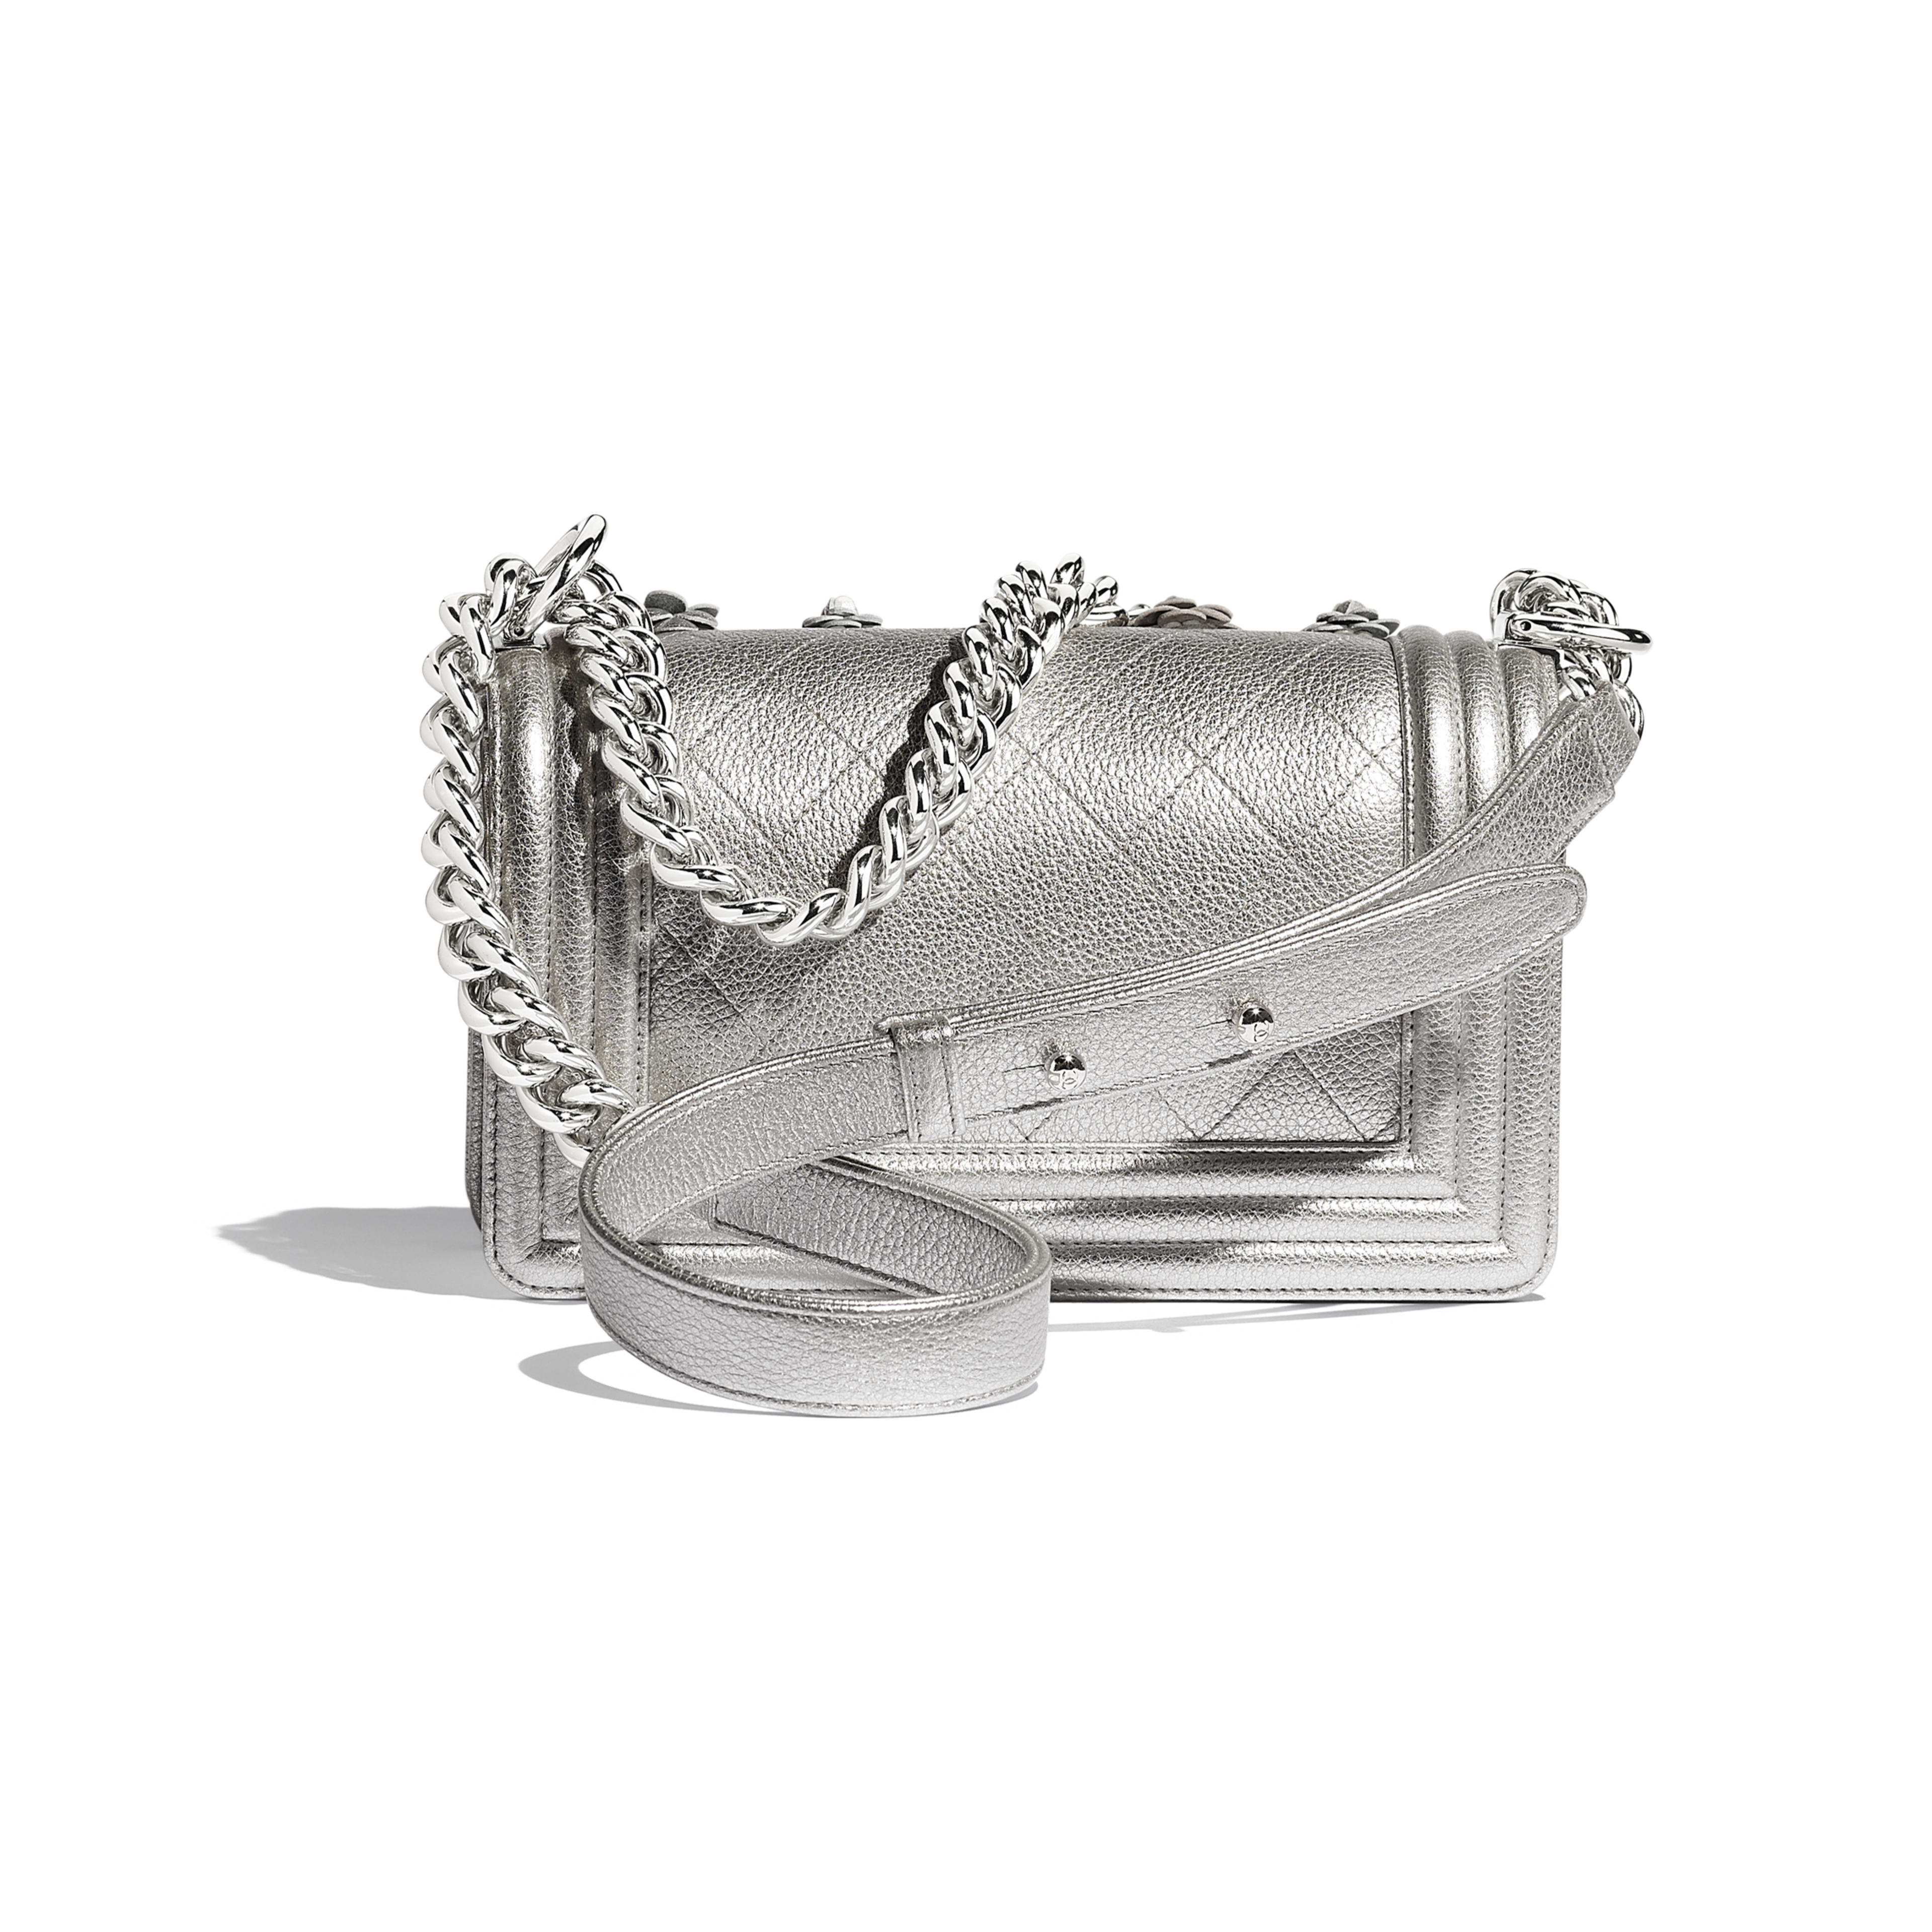 Small BOY CHANEL Handbag - Silver - Embroidered Metallic Grained Calfskin & Silver-Tone Metal - Alternative view - see full sized version